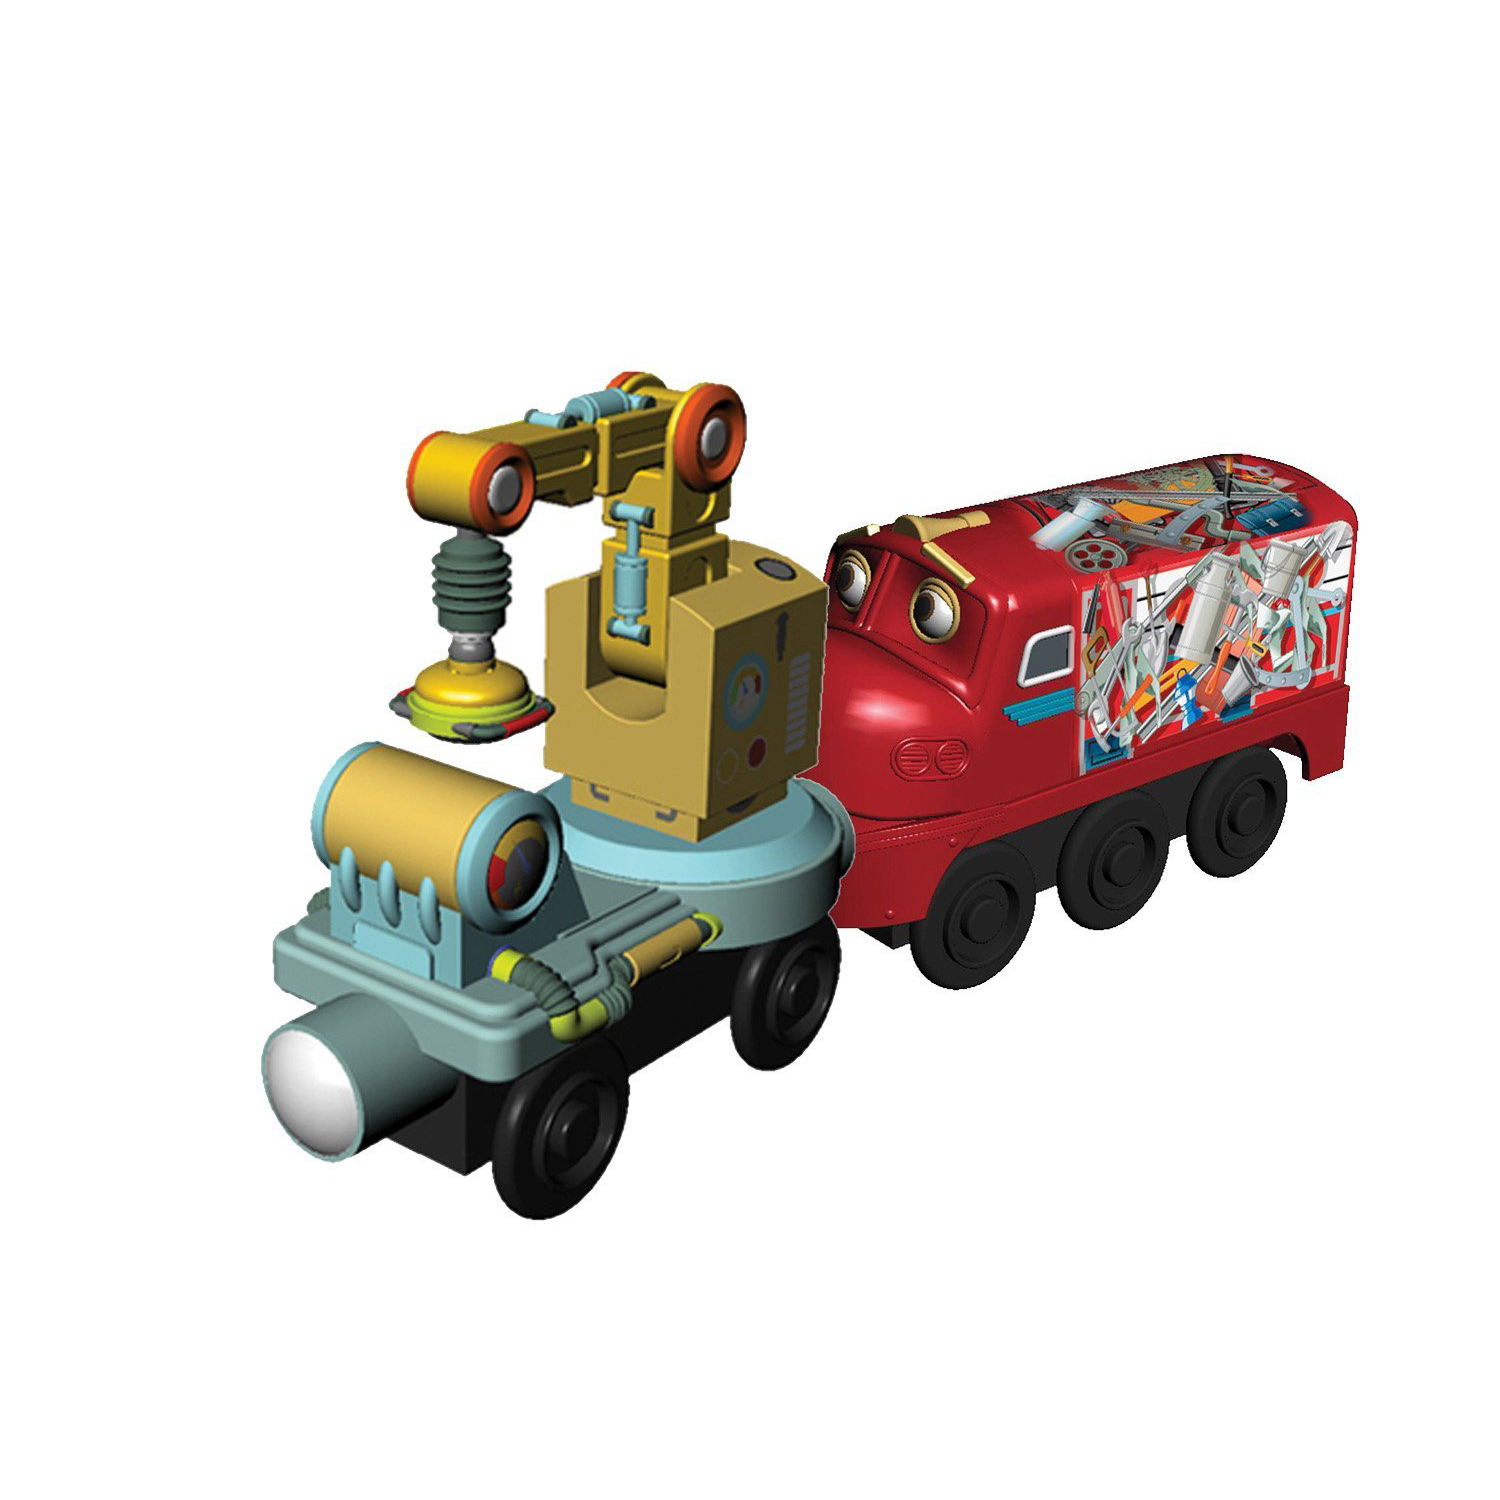 Chuggington Wooden Railway - Magnetic Wilson with Crane Car at ToyStop